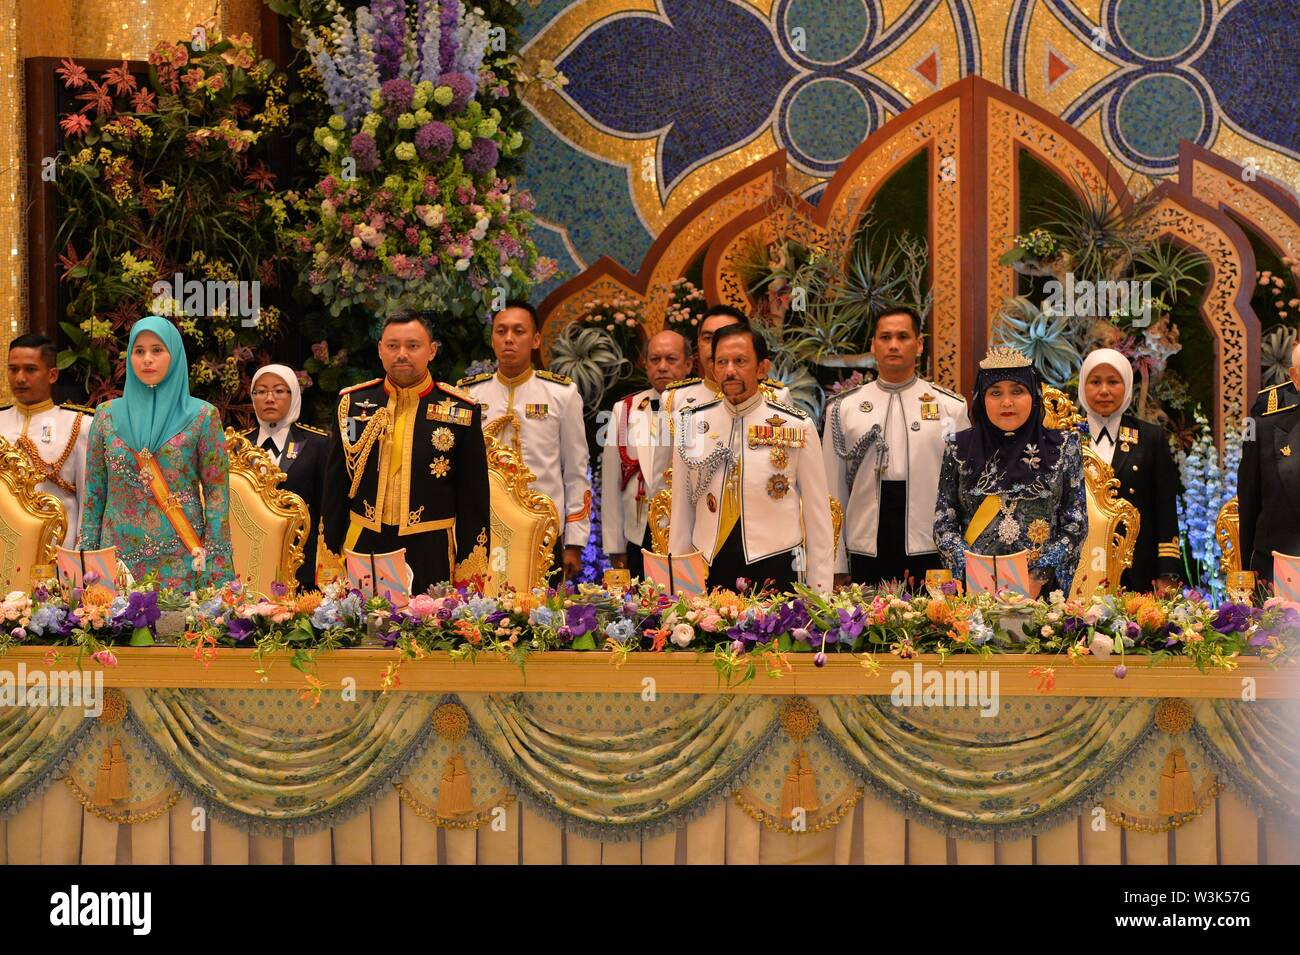 (190716) -- BANDAR SERI BEGAWAN, July 16, 2019 (Xinhua) -- Brunei's Sultan Haji Hassanal Bolkiah (2nd R, front) attends a state banquet in celebration of his 73rd birthday with other members of the royal family at Istana Nurul Iman, the royal palace, in Bandar Seri Begawan, capital of Brunei, July 15, 2019. Around 4,000 people comprising of members of the royal families, state dignitaries and foreign diplomatic corps, as well as foreign invited guests attended a grand state banquet in conjunction with the Sultan's 73rd birthday celebration on Monday night at the royal palace - Istana Nurul Ima - Stock Image